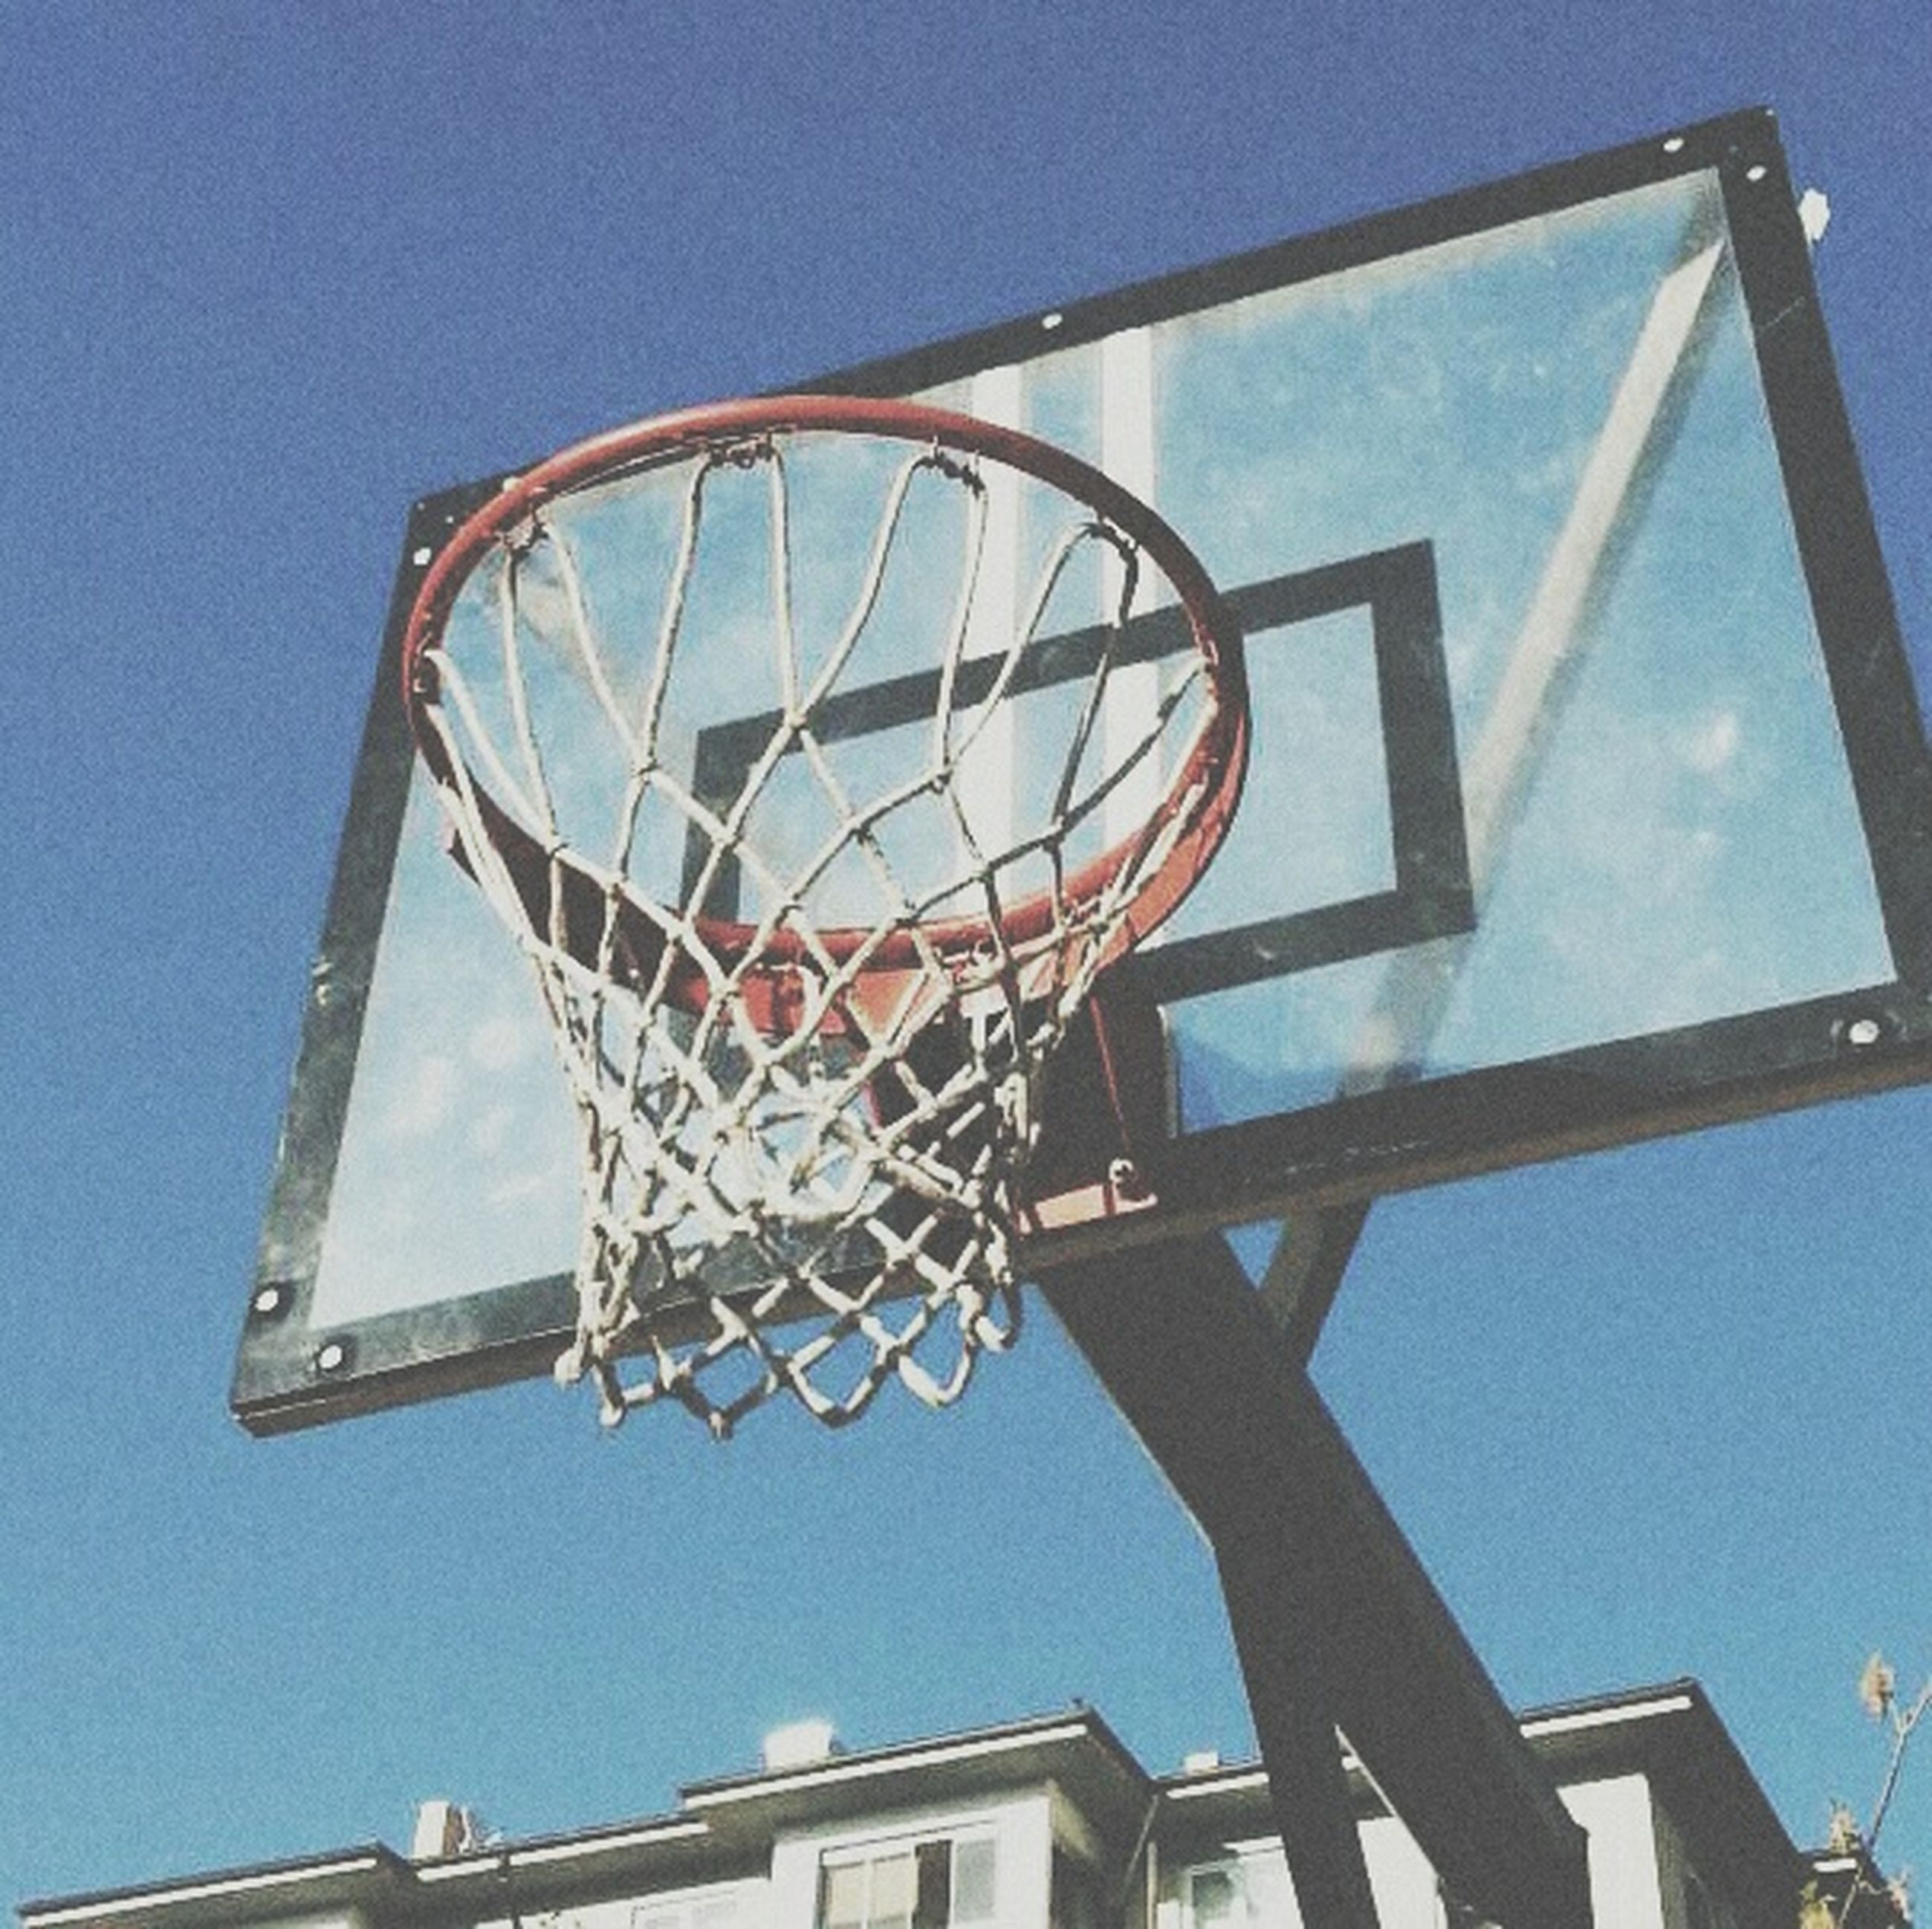 low angle view, built structure, architecture, building exterior, blue, clear sky, sky, day, hanging, window, no people, outdoors, sunlight, lighting equipment, metal, building, basketball hoop, geometric shape, lantern, circle